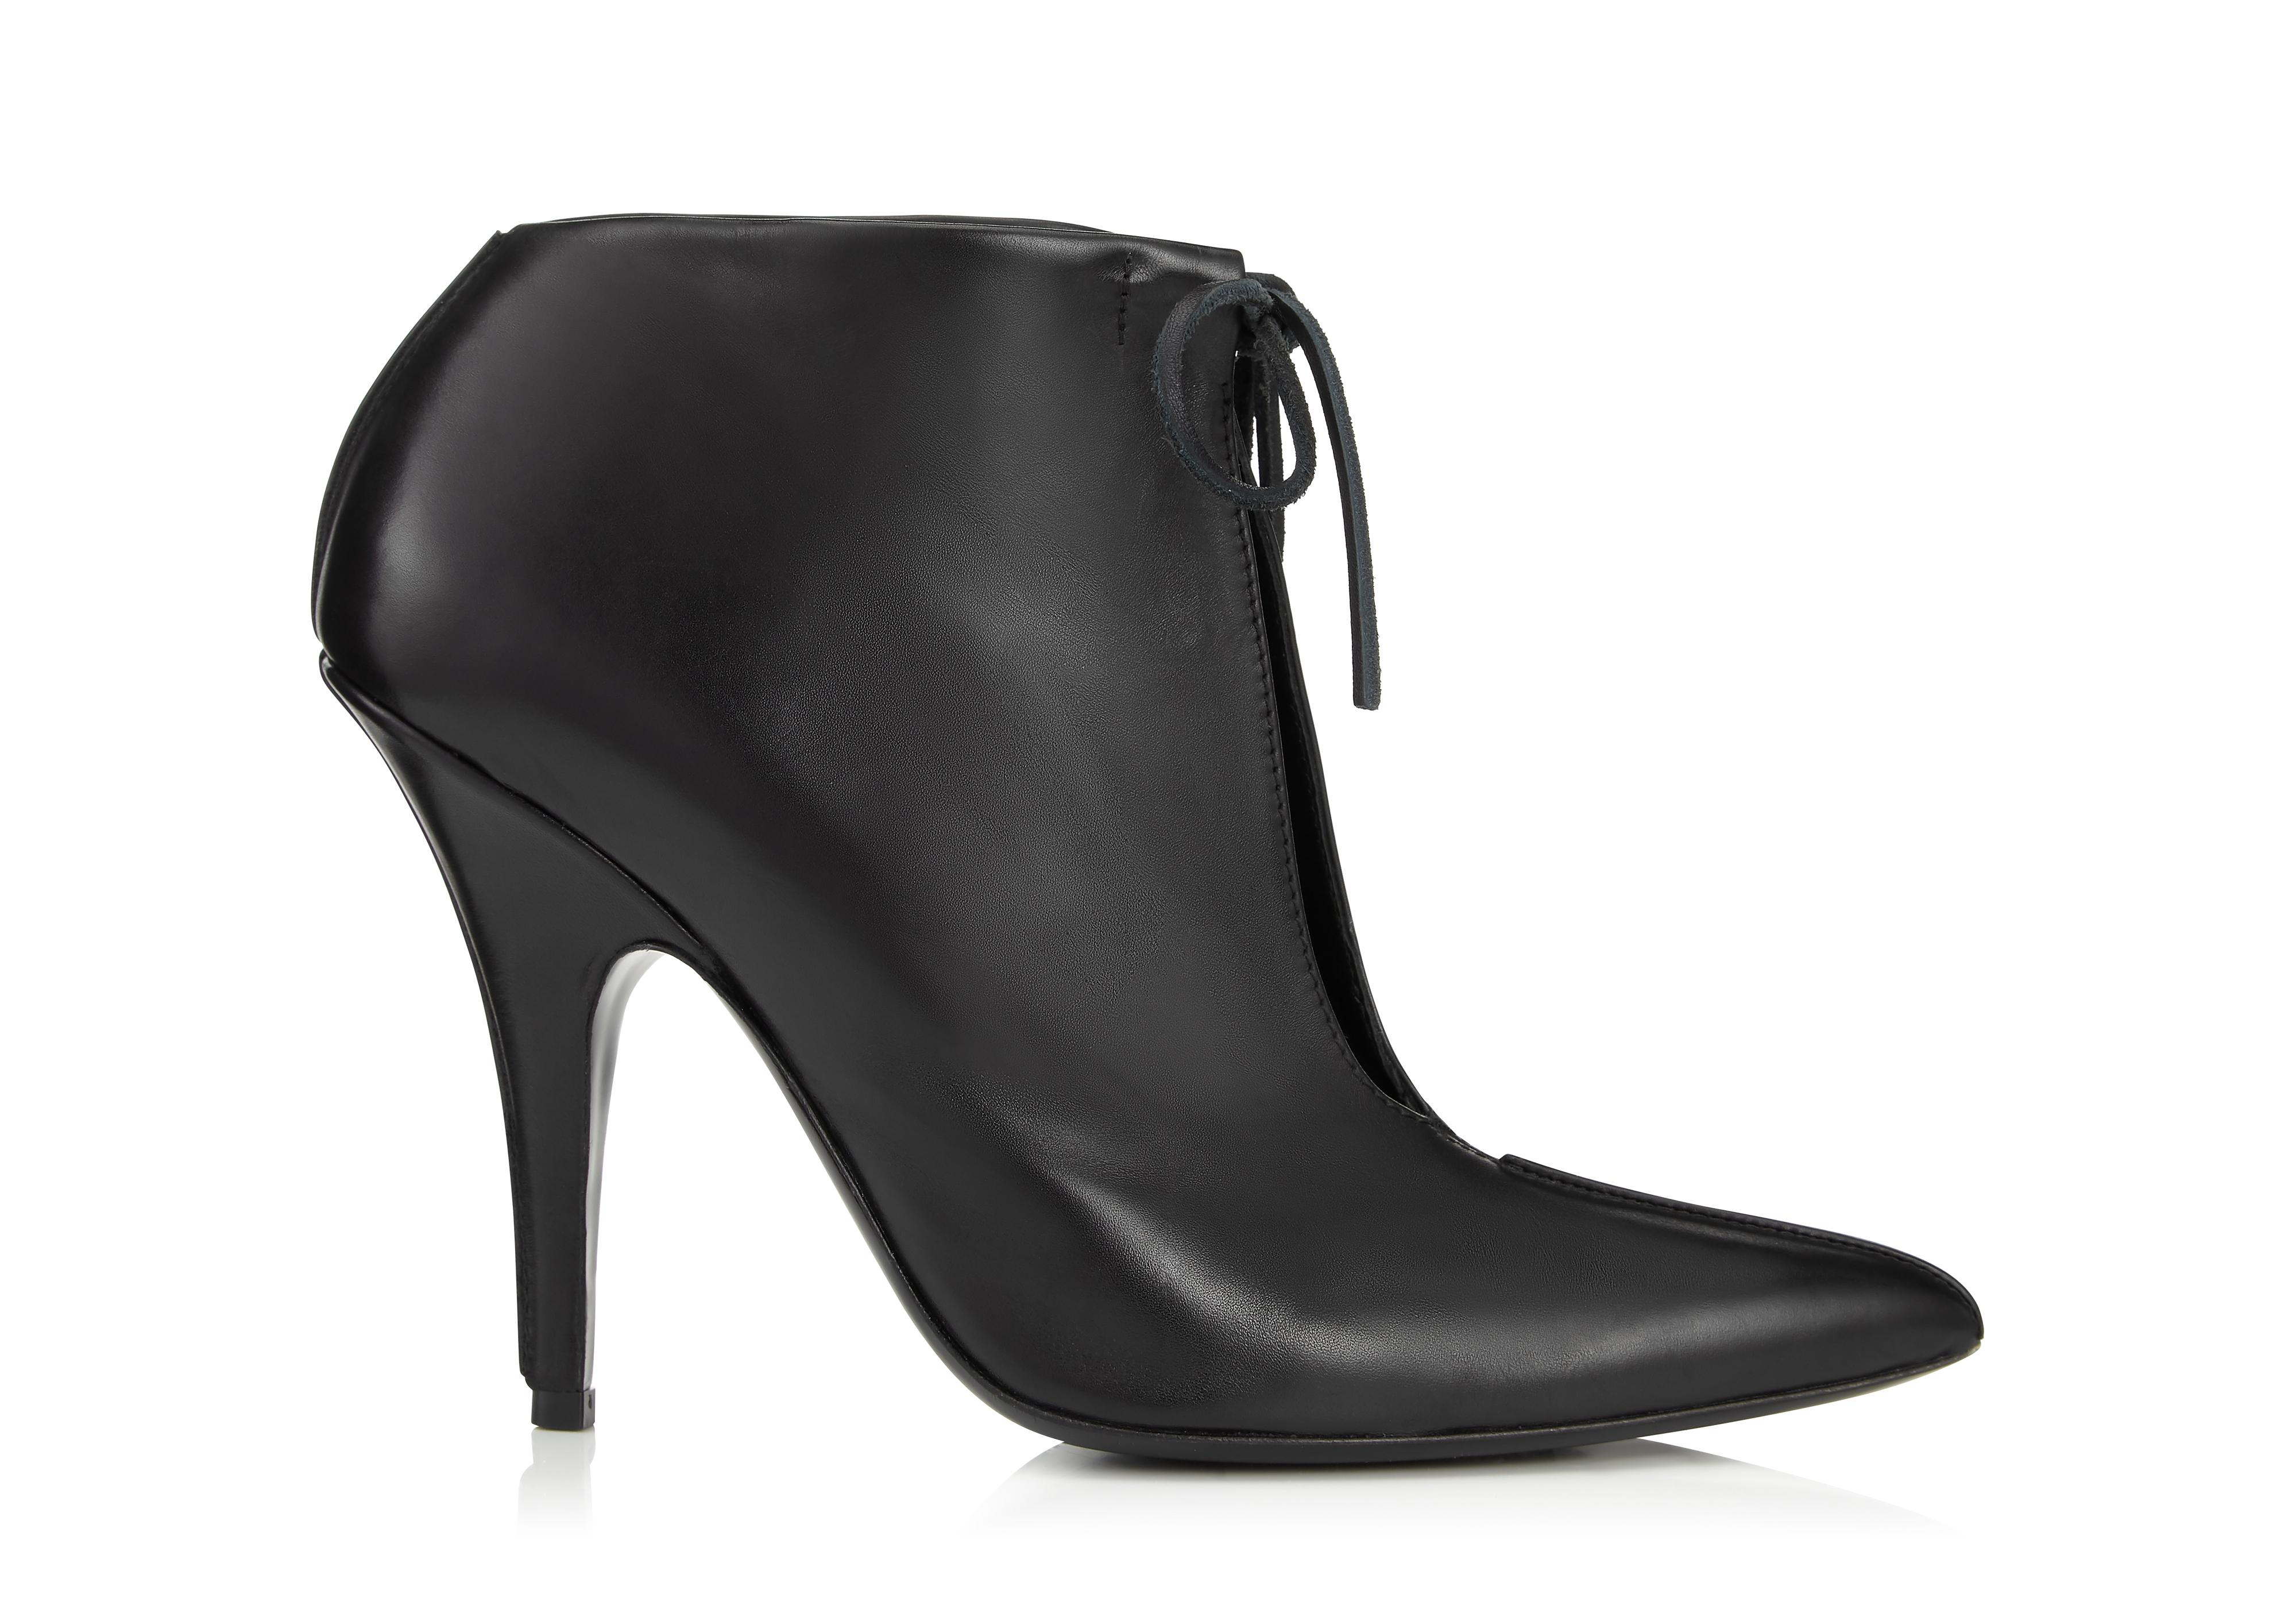 LEATHER ELLIPSE ANKLE BOOT A thumbnail